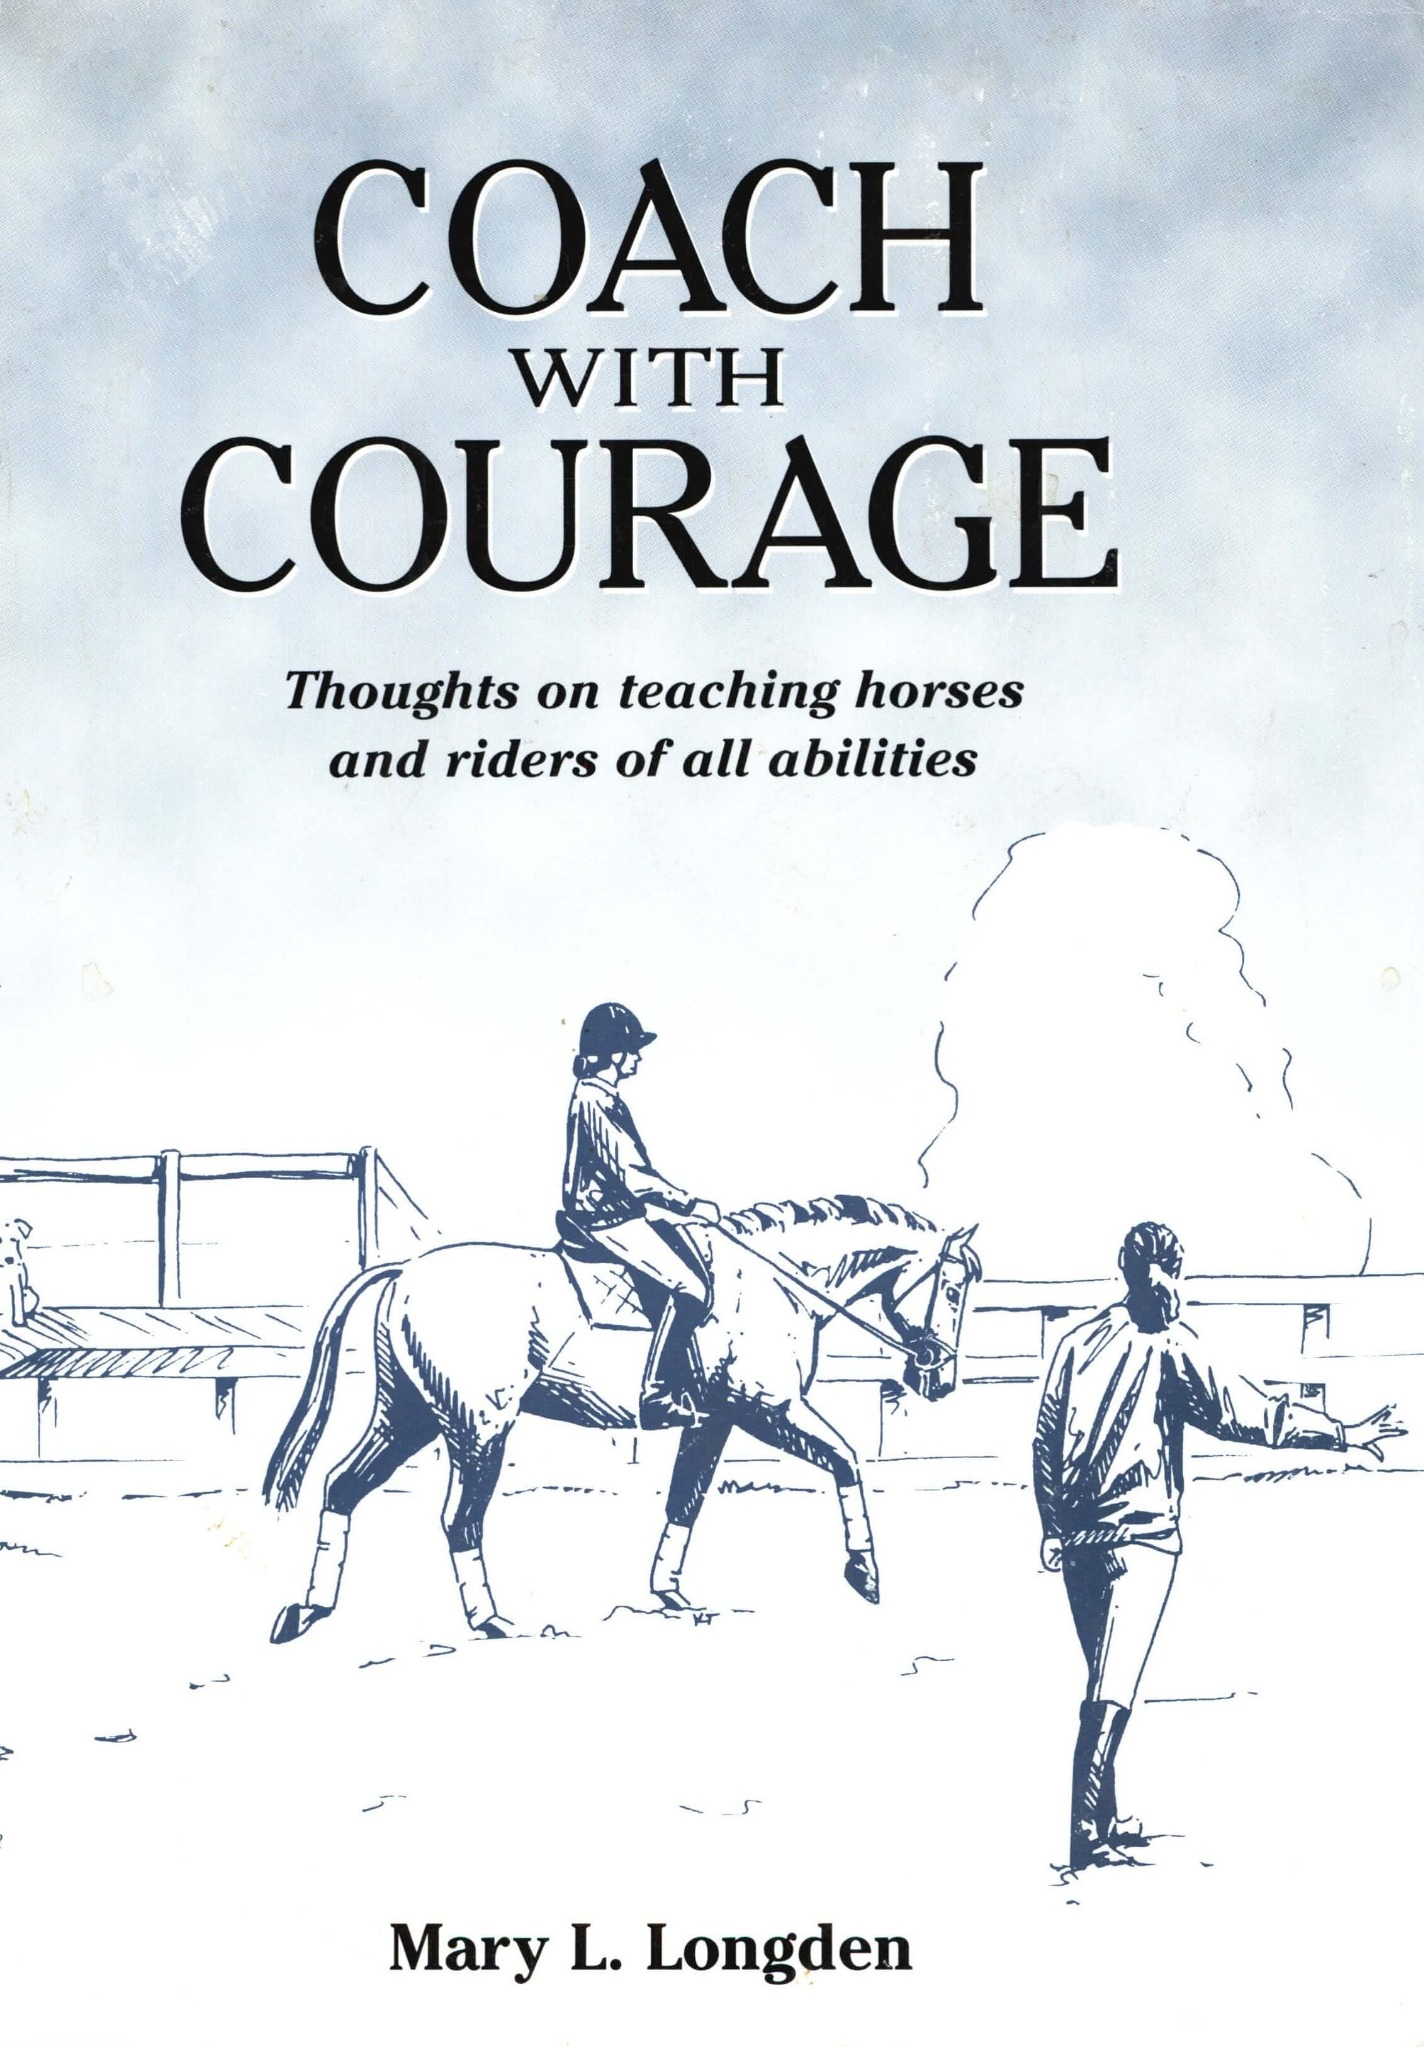 Coach with Courage